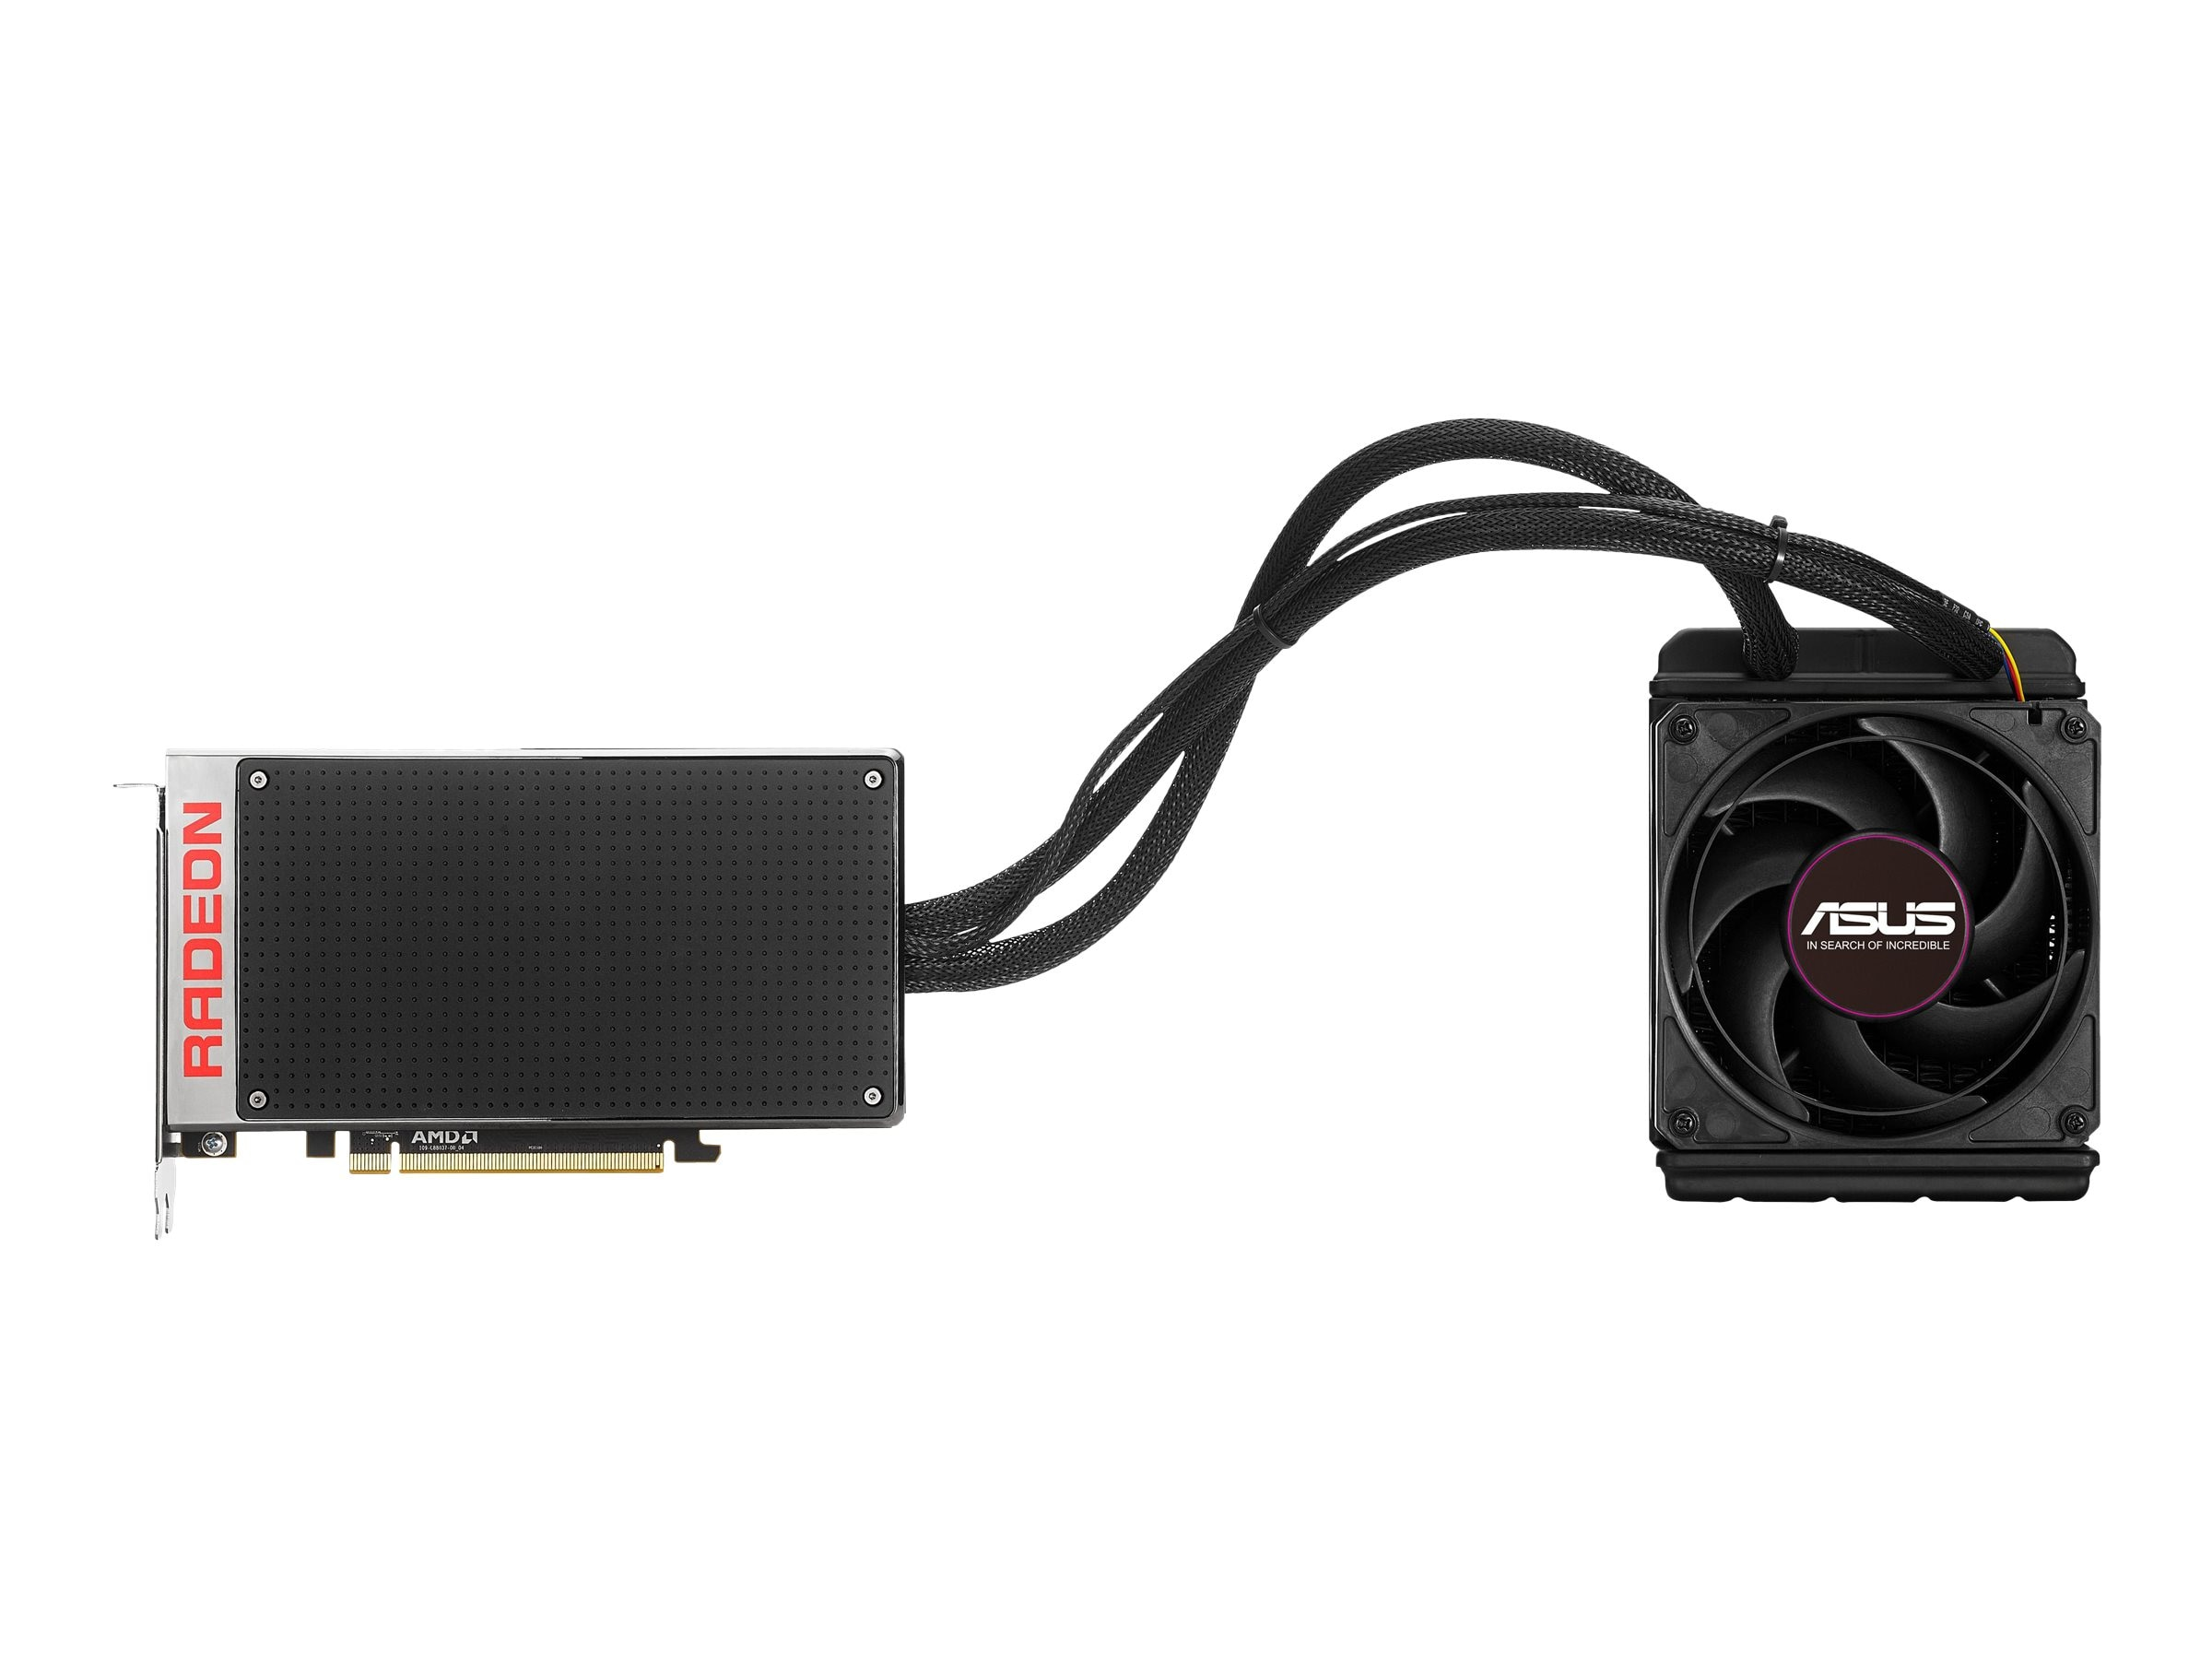 Asus Radeon R9 Fury X PCIe 3.0 Graphics Card, 4GB GDDR5